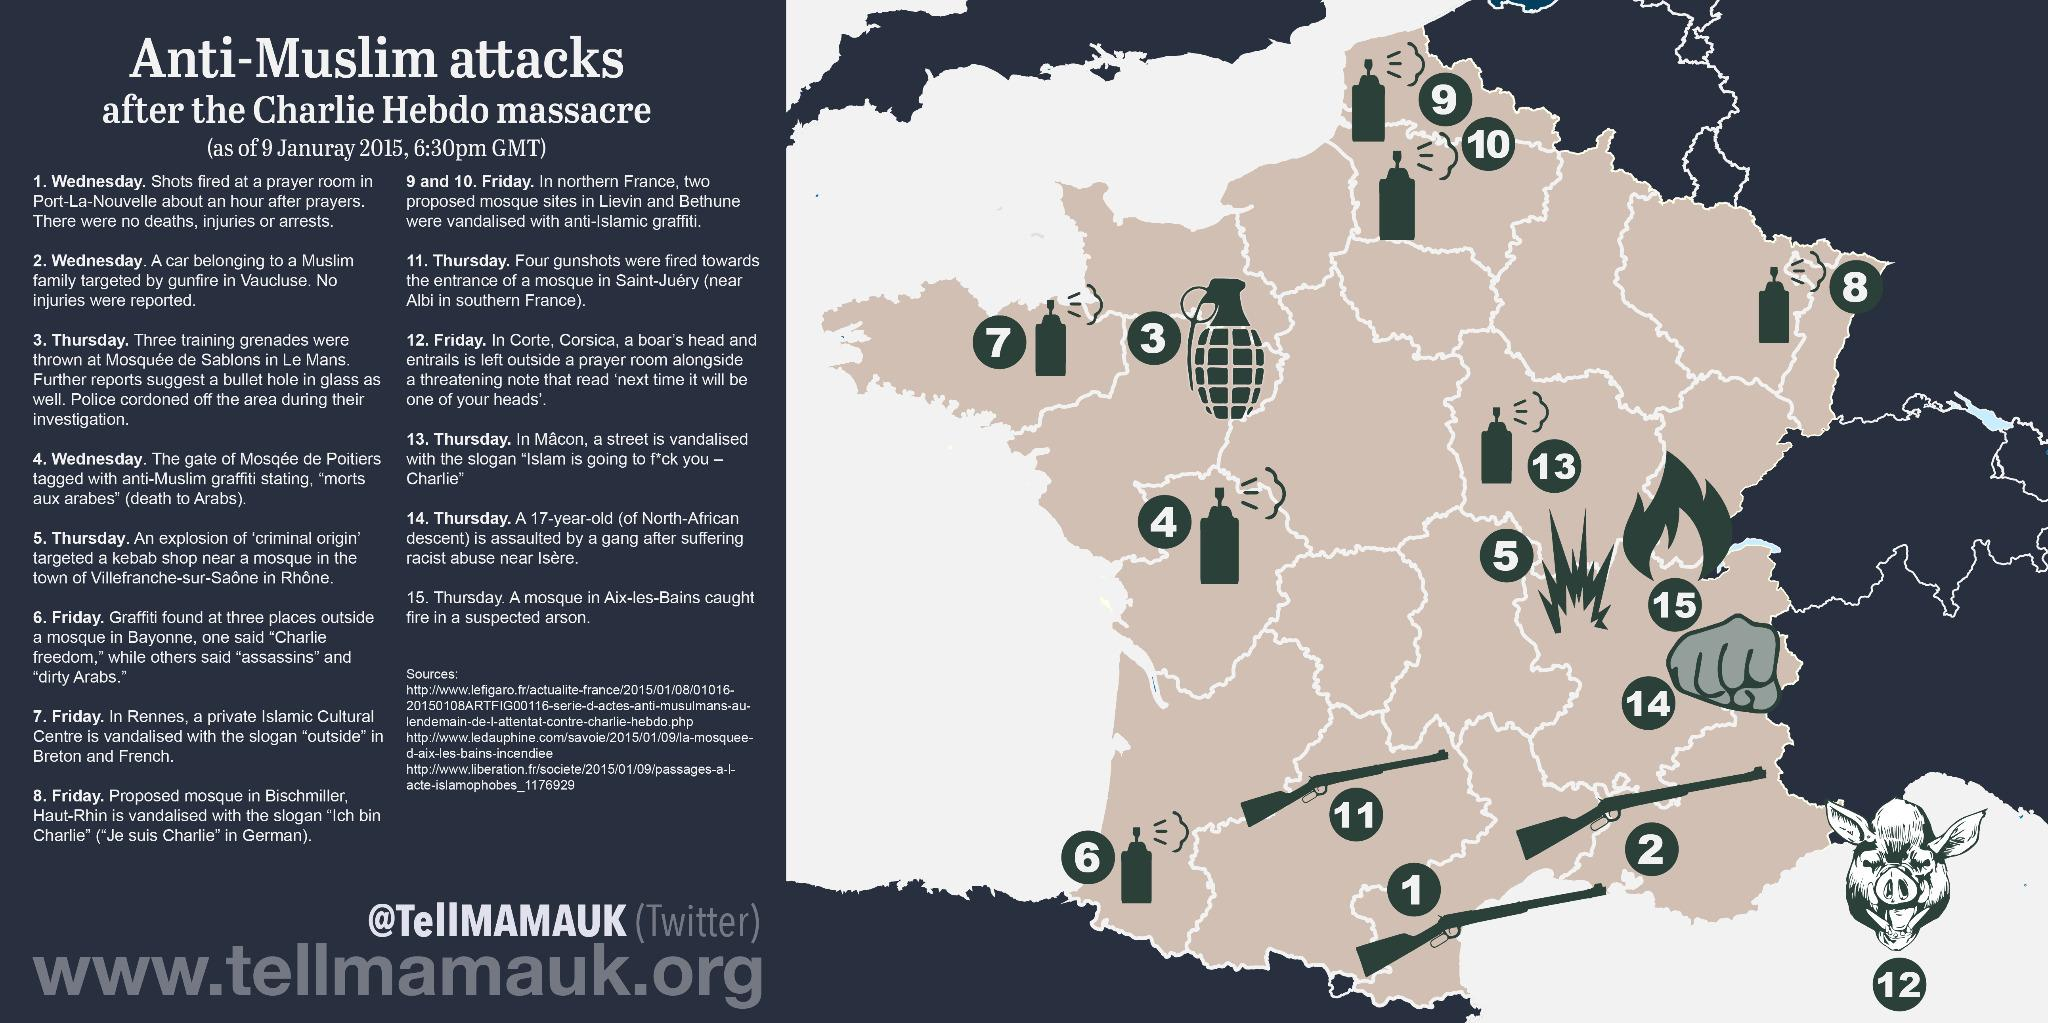 Growing Anti-Muslim attacks in France just this week